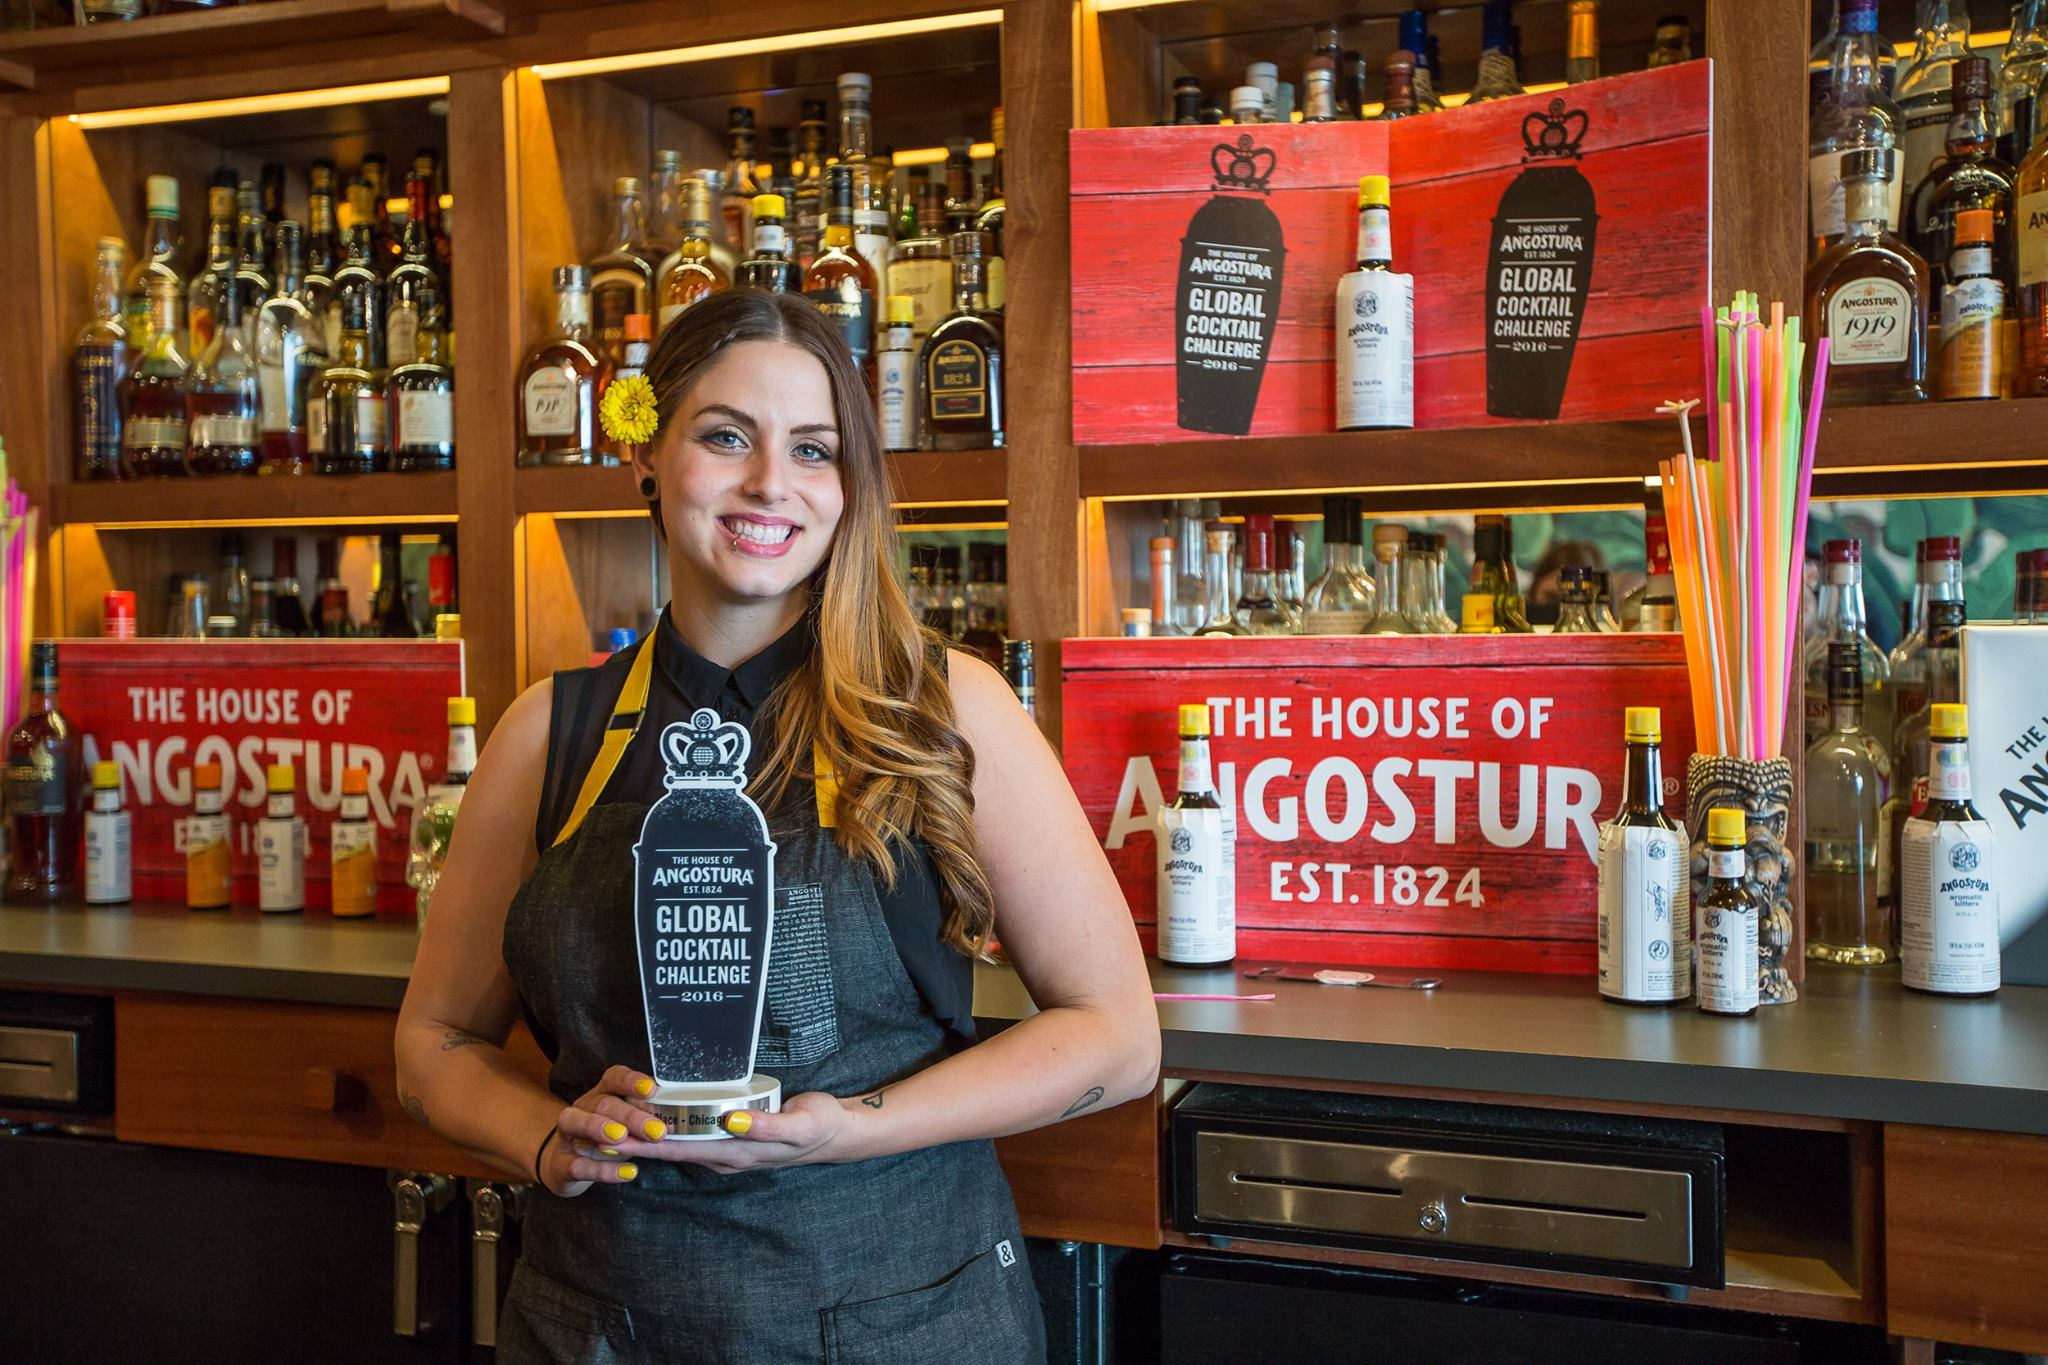 Elizabeth Mickiewicz at the 2016 Angostura Global Cocktail Challenge